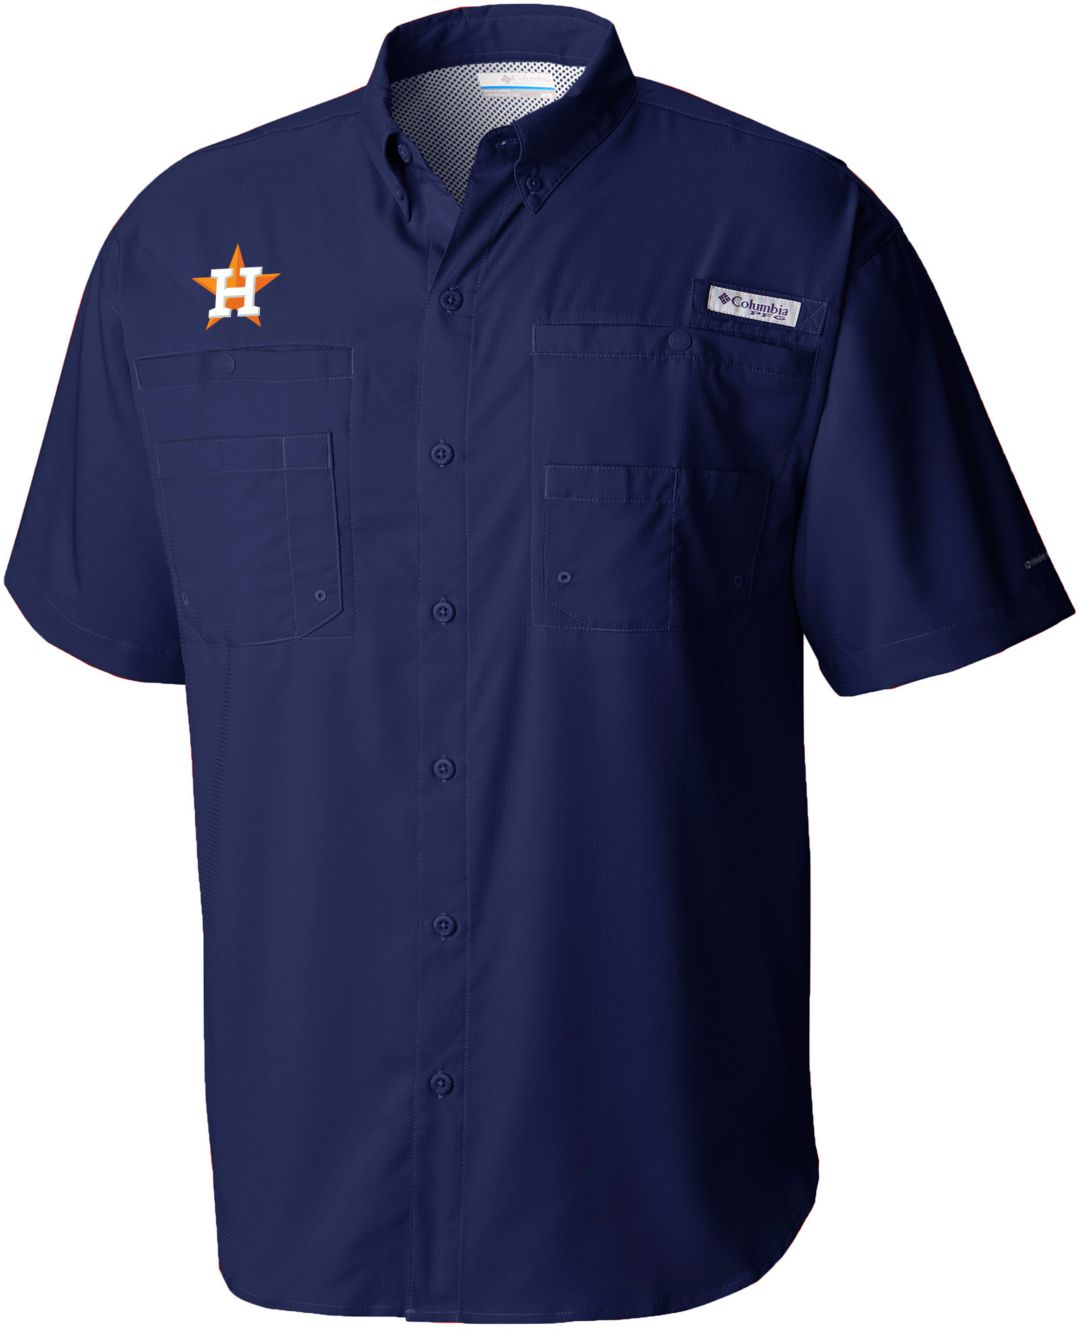 988c2e7a4e8 Columbia Men's Houston Astros Navy Tamiami Performance Short Sleeve Shirt 1